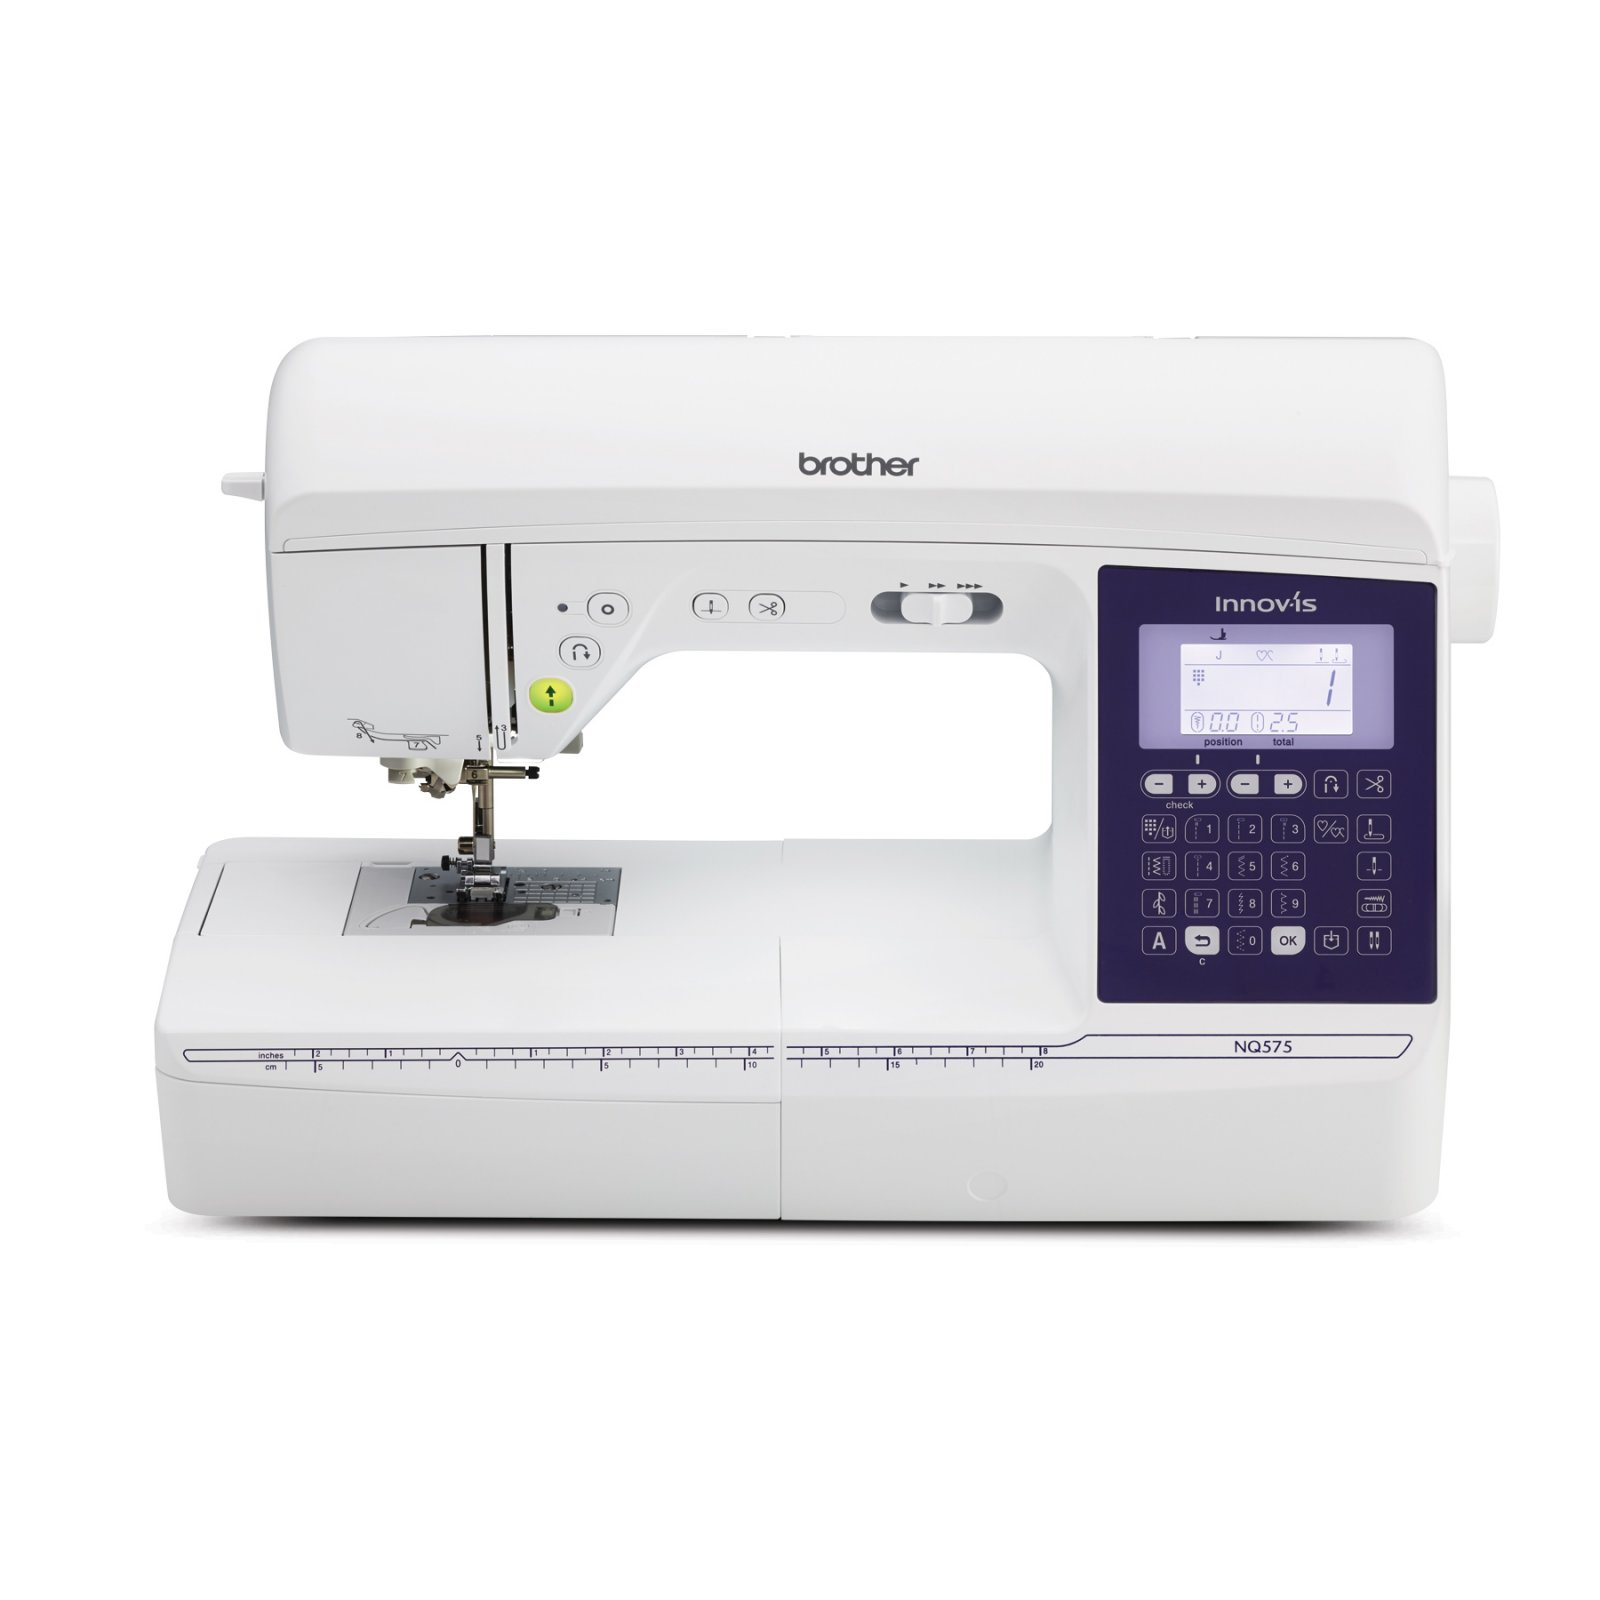 Brother NQ575 sewing machine